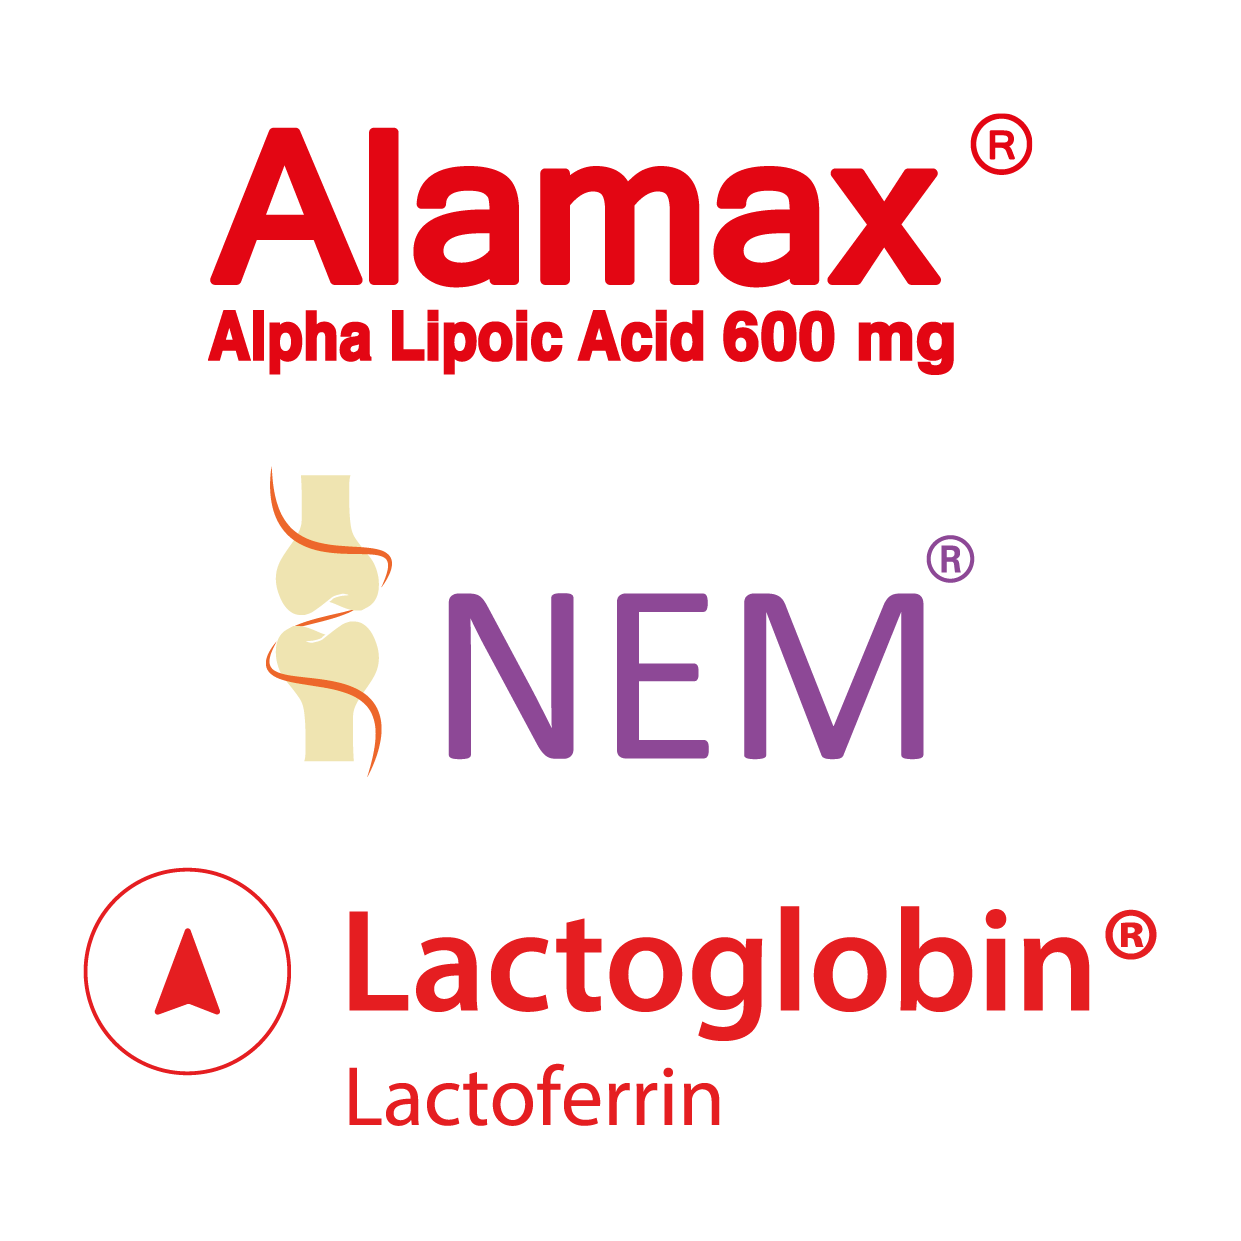 Establishment OTX products Like Alamax, Lactoglobin, and NEM 